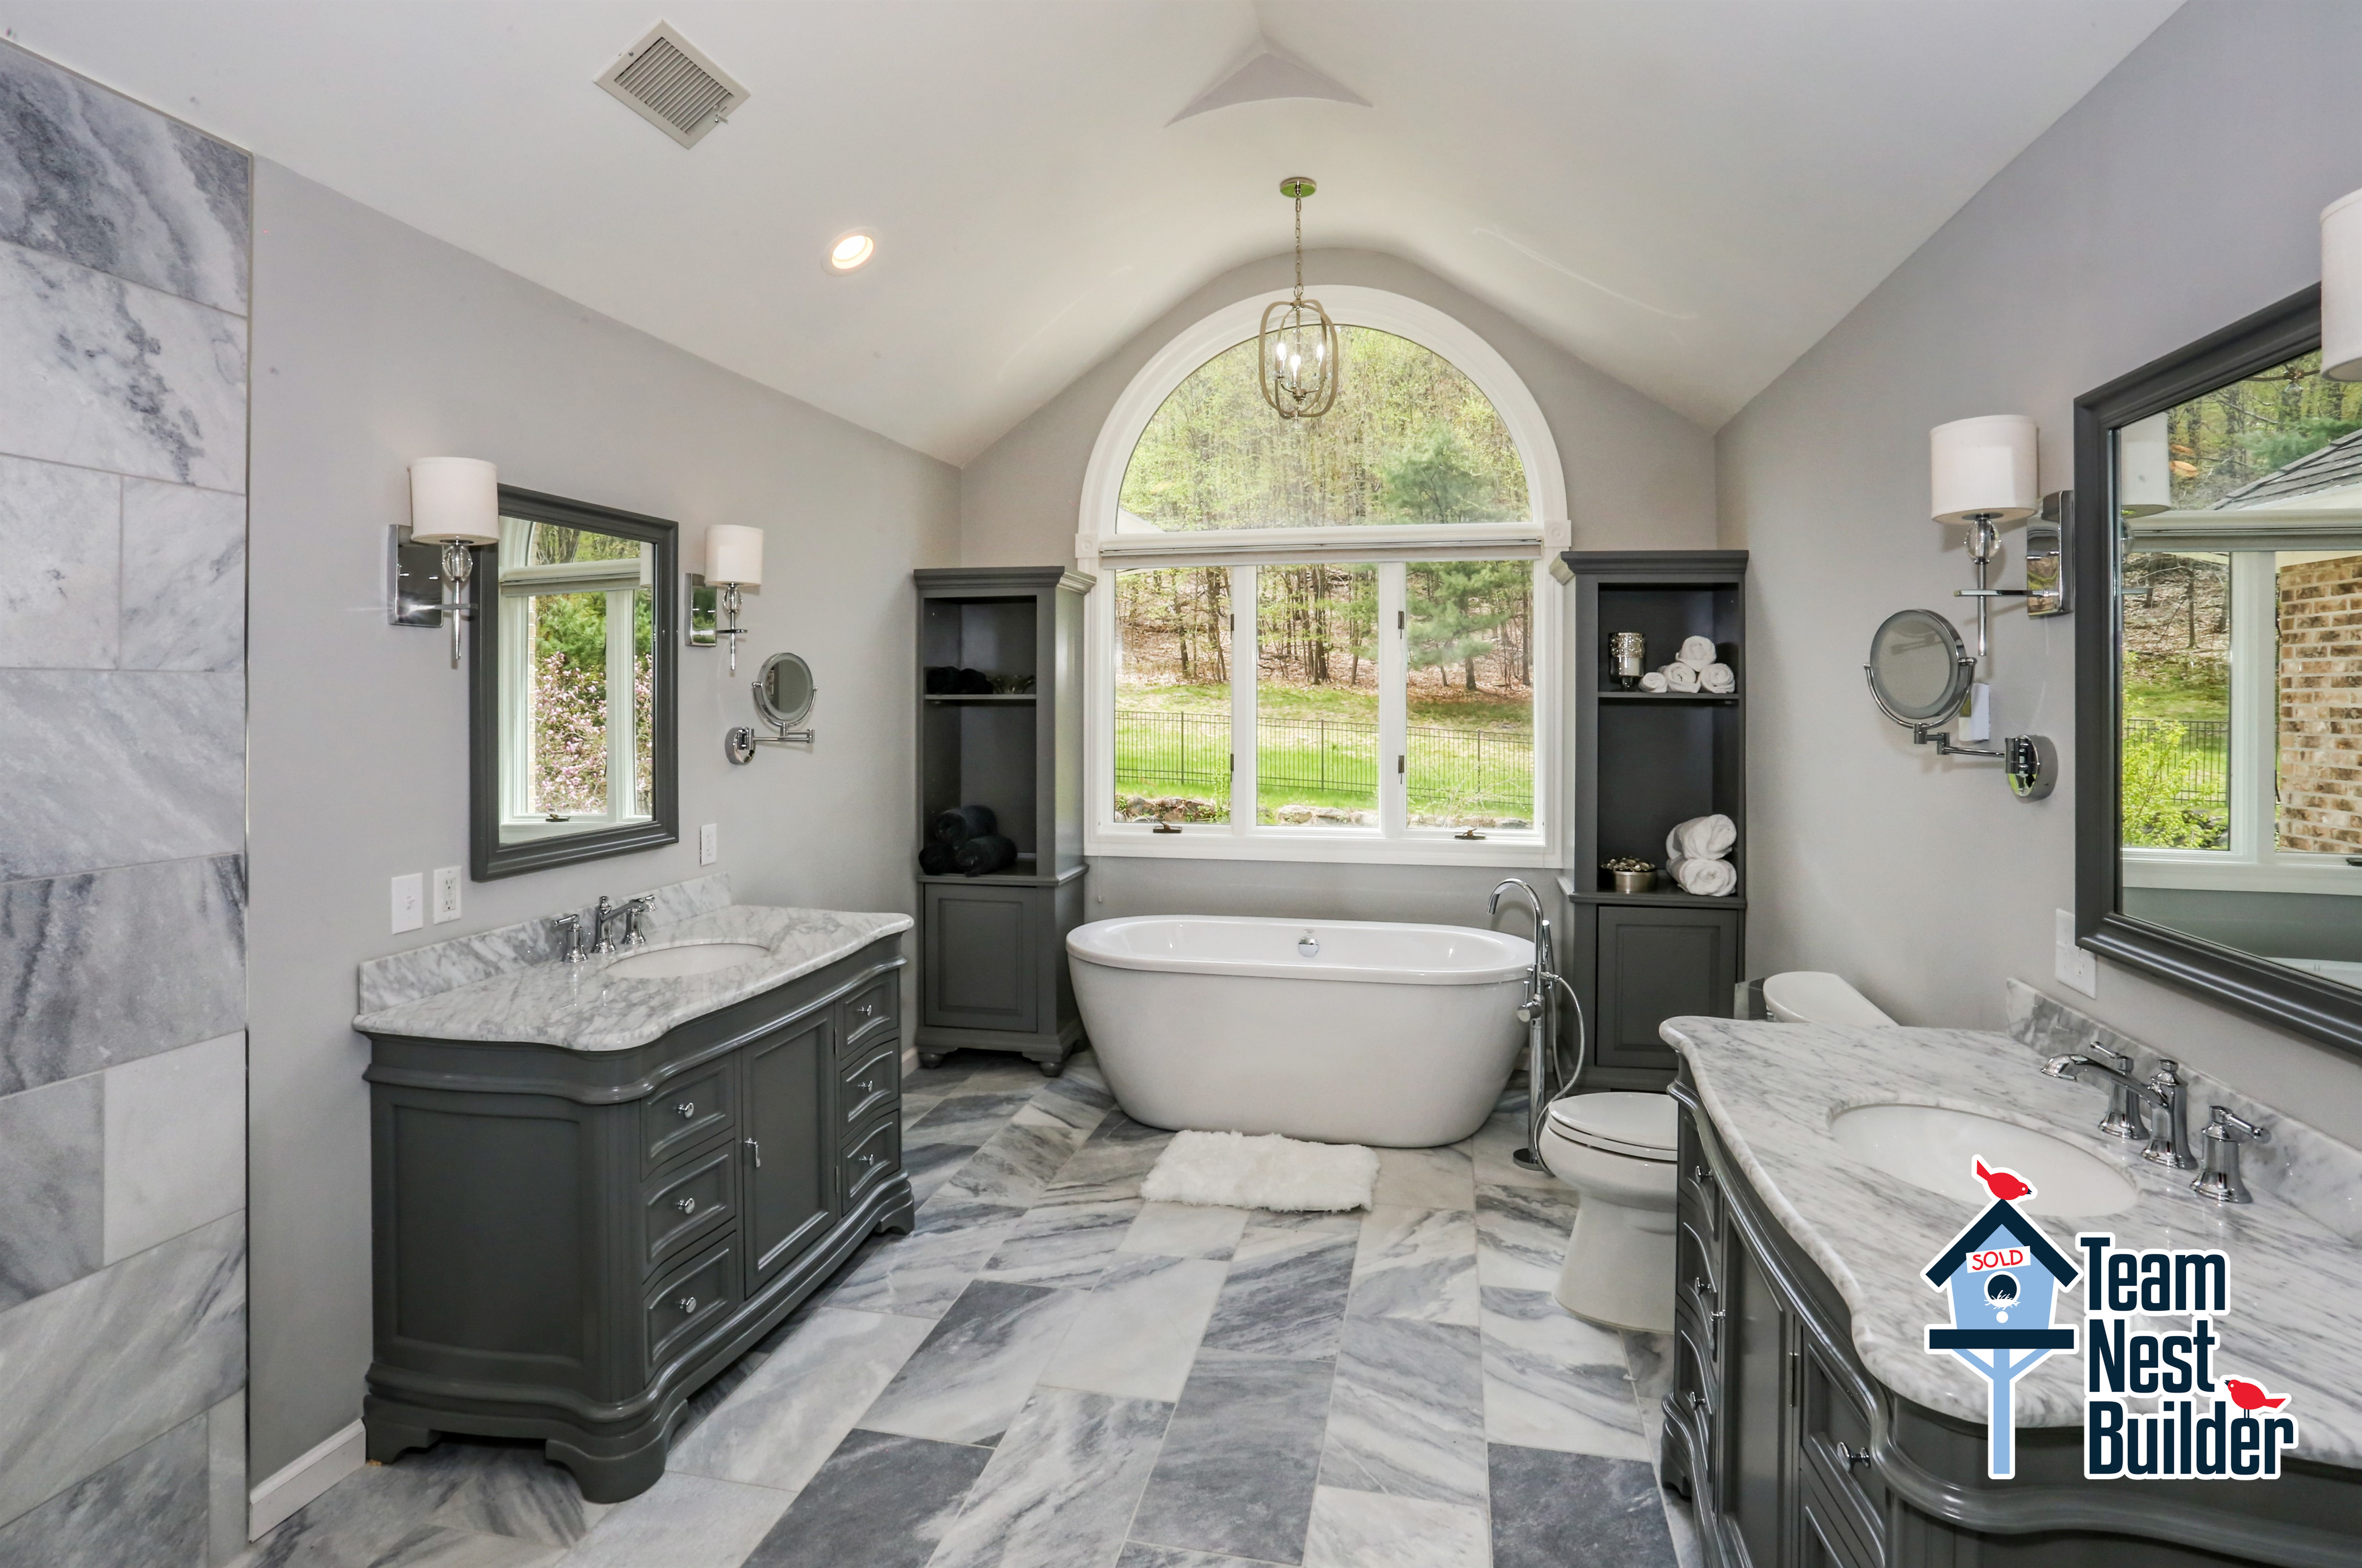 Completely renovated luxury master bathroom